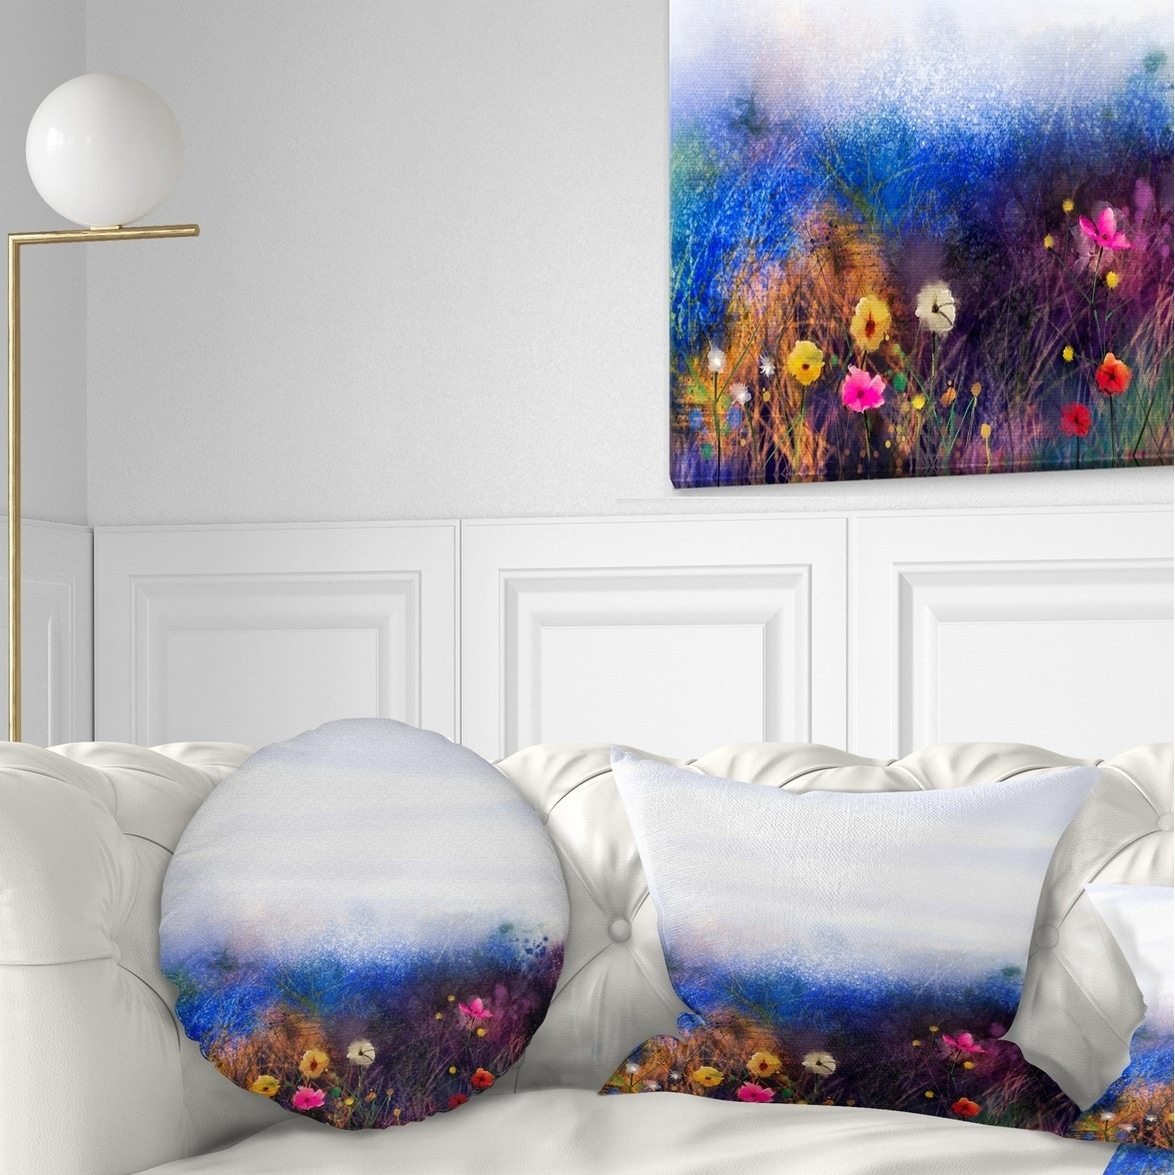 Designart Cu14092 16 16 Watercolor Painting Flower In Meadow Floral Cushion Cover For Living Room Insert Printed On Both Side Sofa Throw Pillow 16 In In X 16 In Throw Pillow Covers Bedding